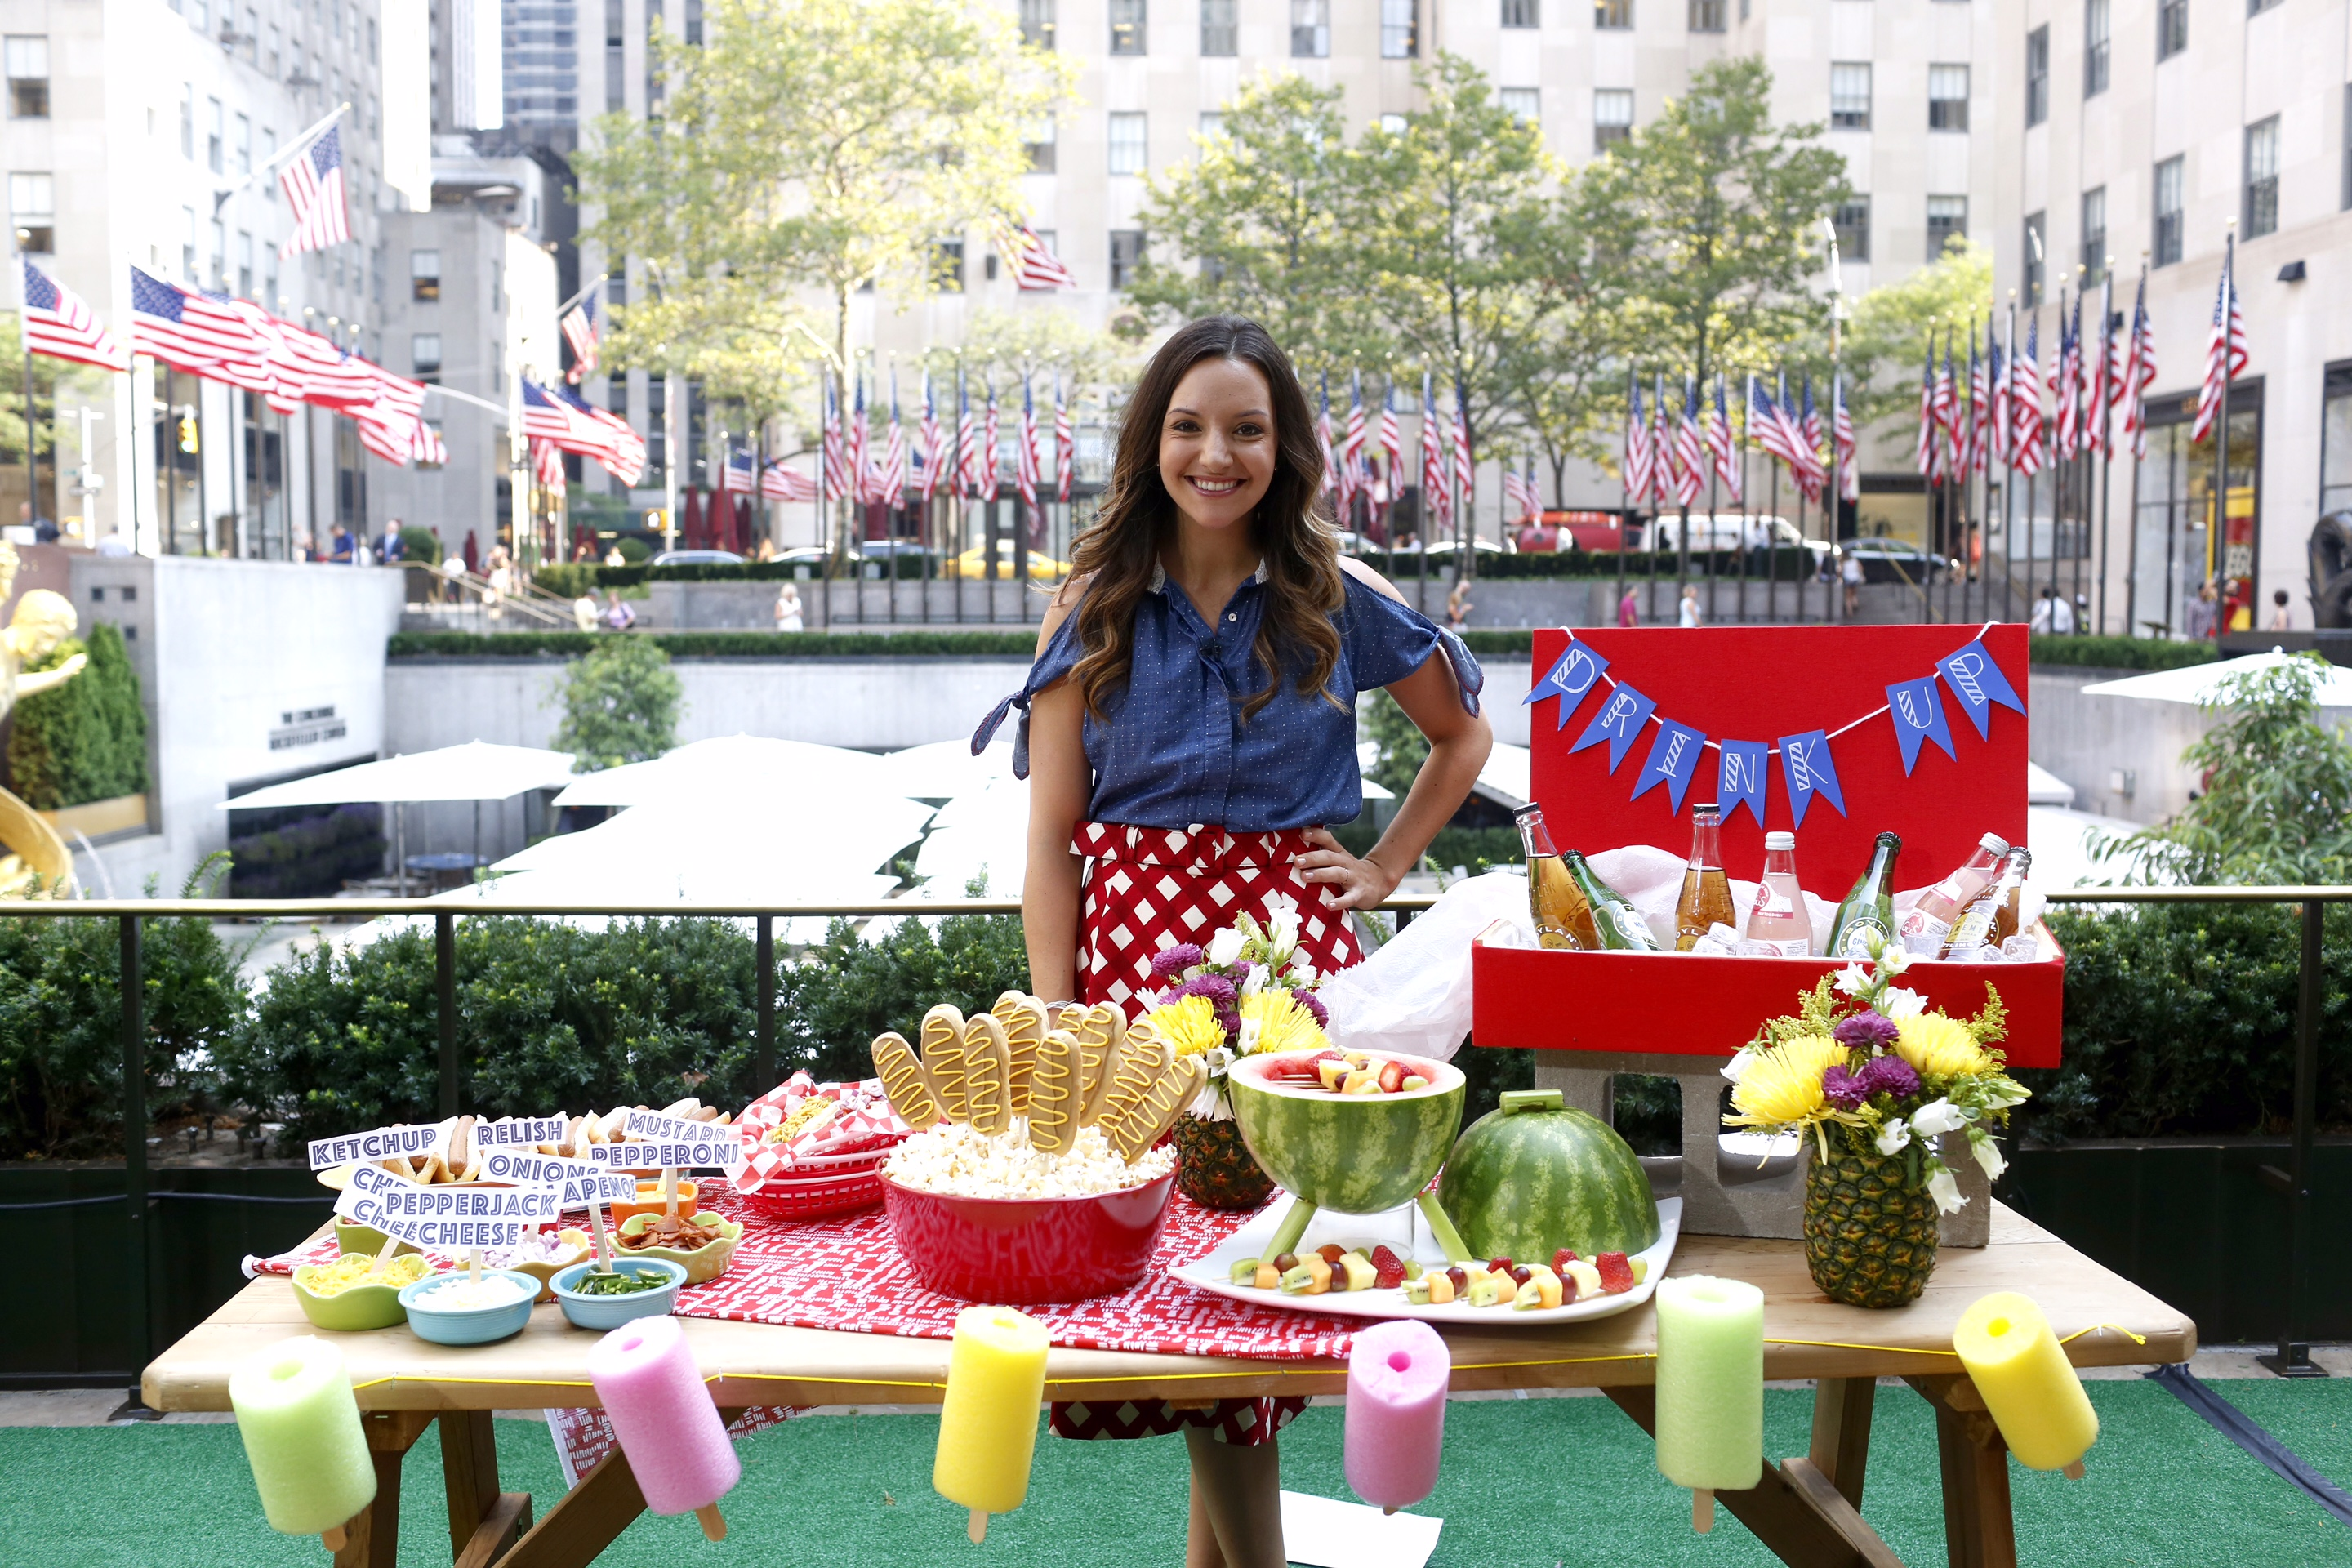 brit morin shares 9 diy labor day party ideas. Black Bedroom Furniture Sets. Home Design Ideas